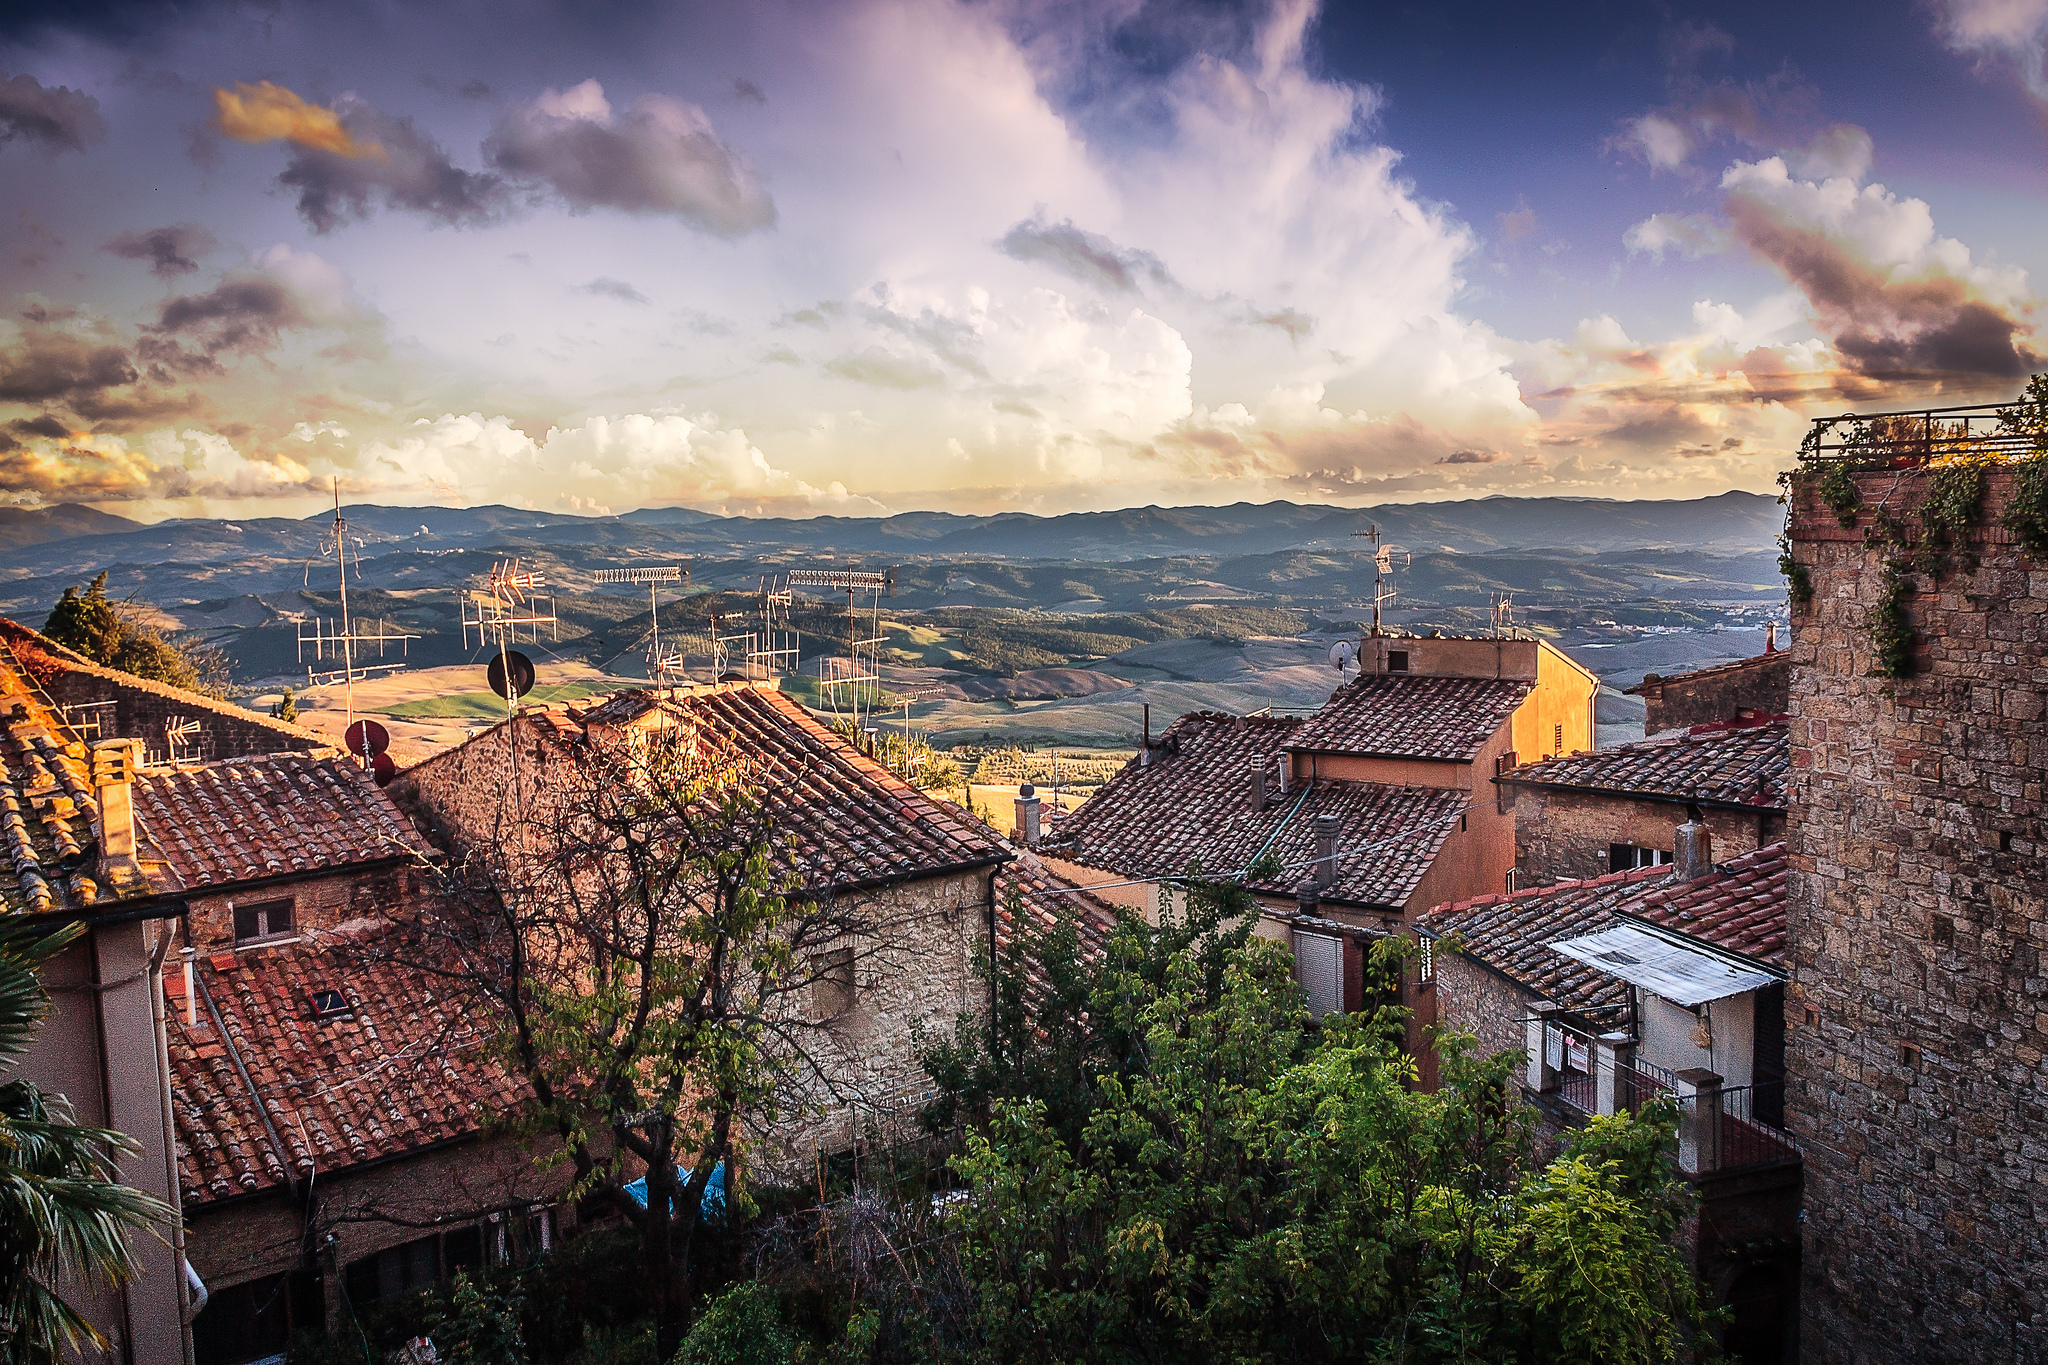 volterra hilltop towns in tuscany